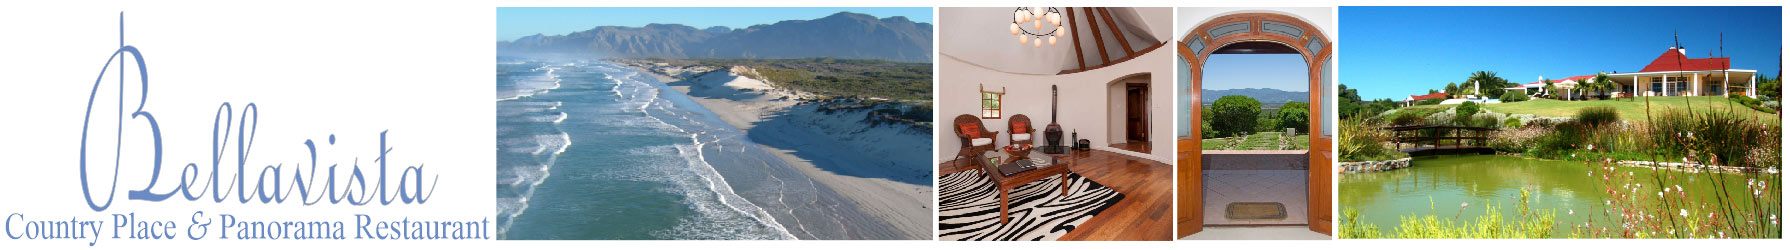 accommodation_south_africa_stanford_1